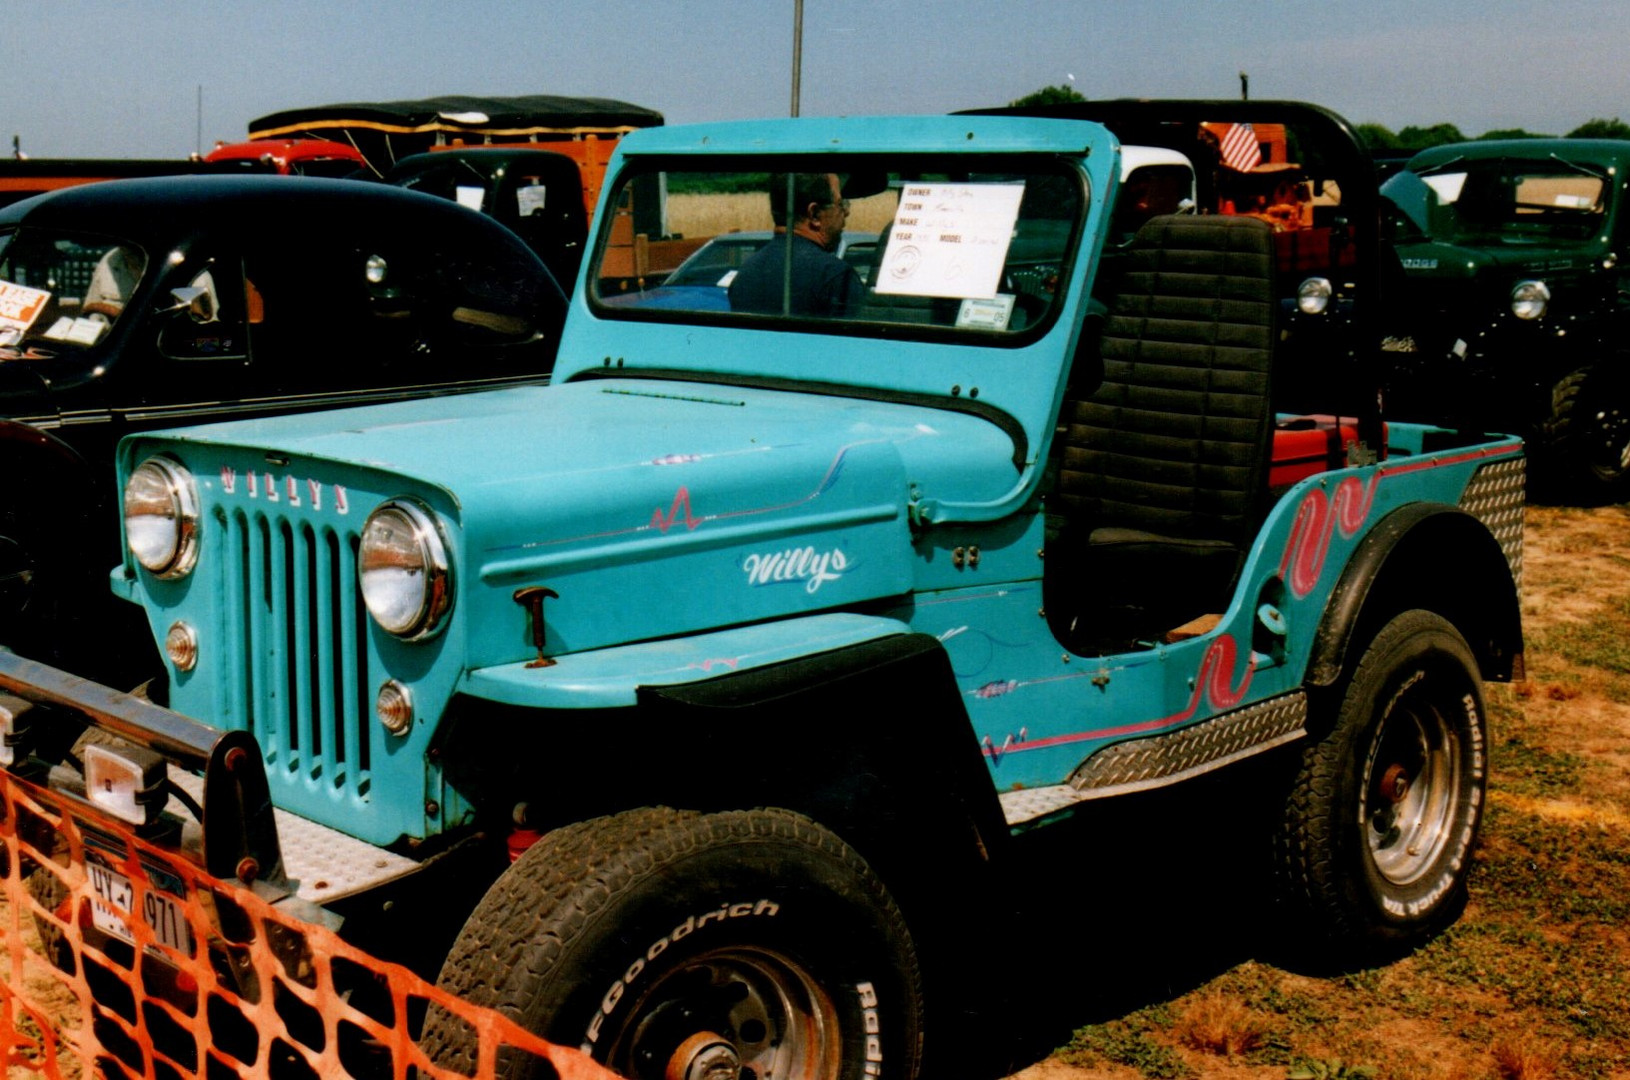 1951 Willys B Jeep - Billy Shea